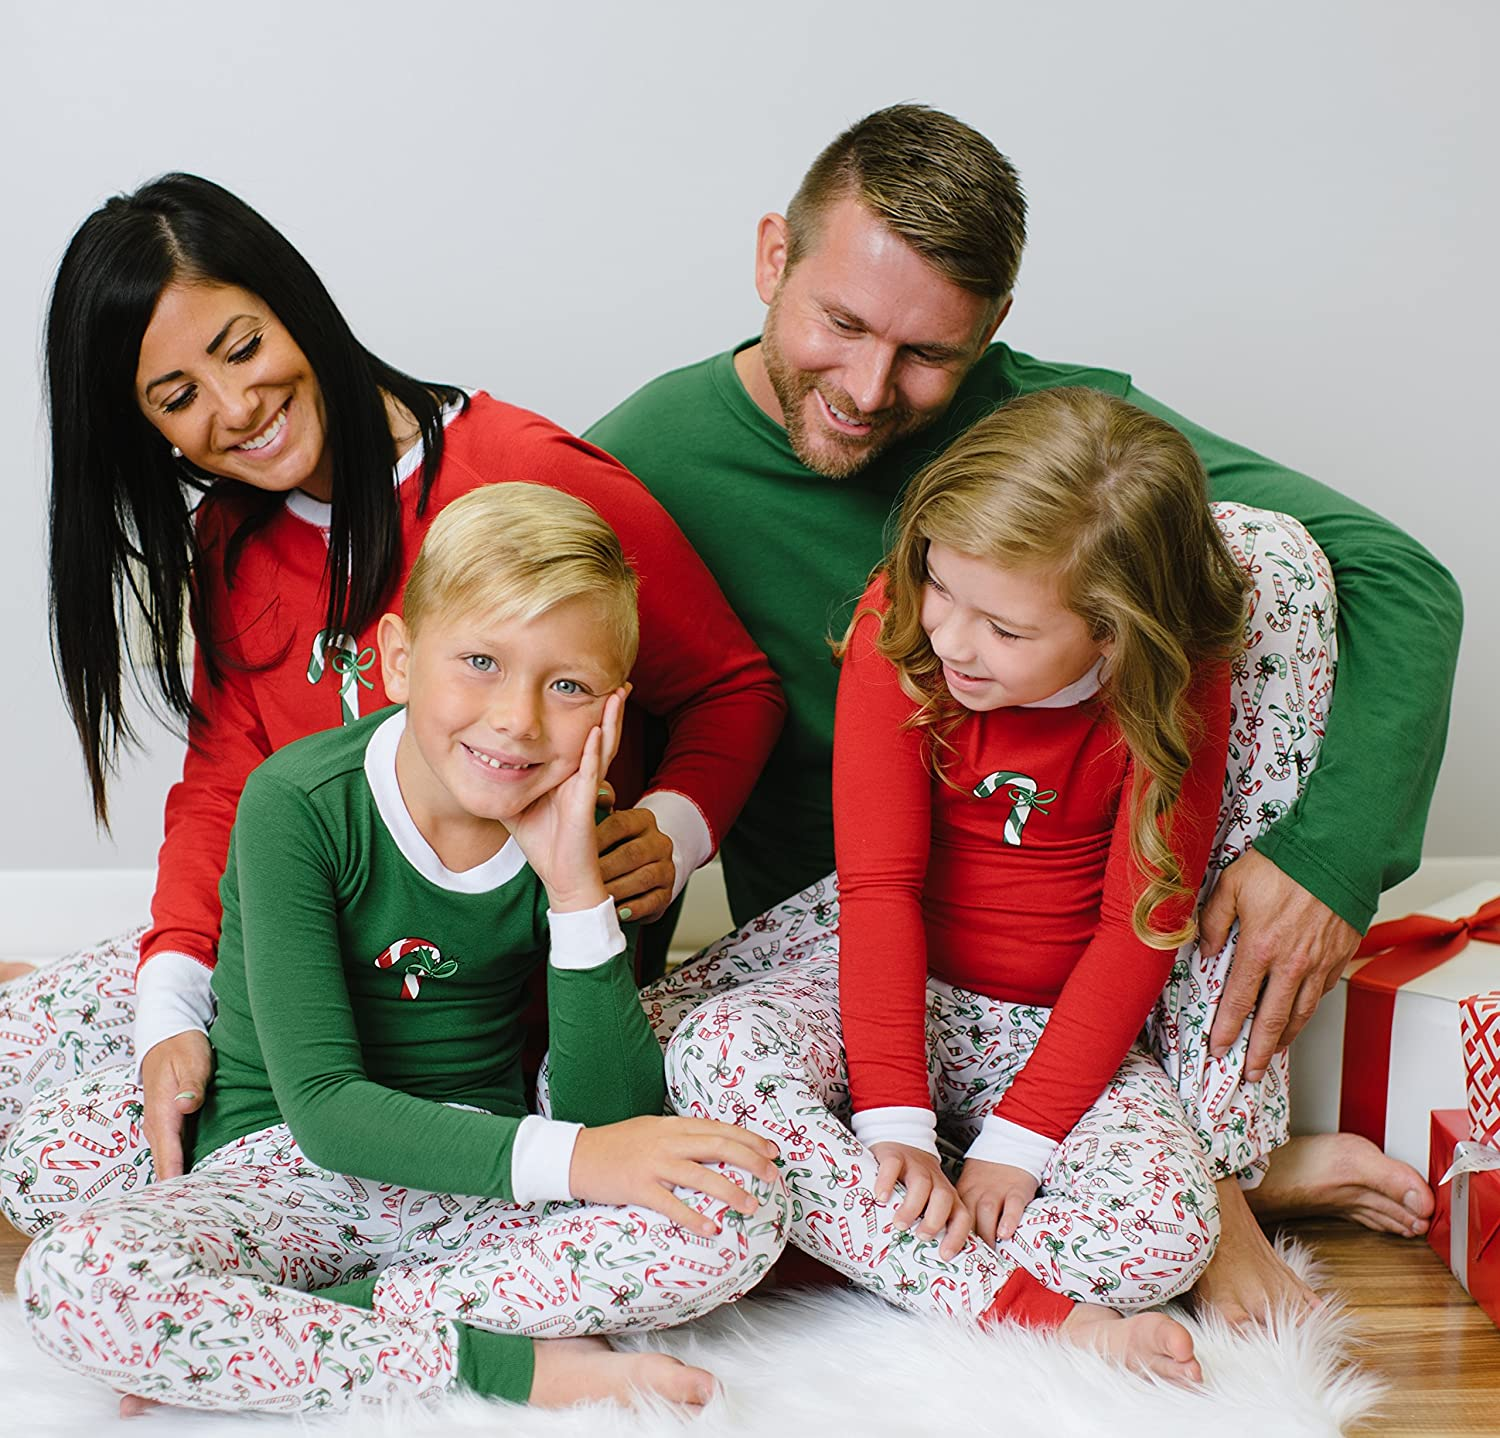 e8de16181f Amazon.com: Sleepyheads Candy Cane Family Matching Pajama Set - Kids - Red  Top (SHM-4035-K-RED-12): Clothing